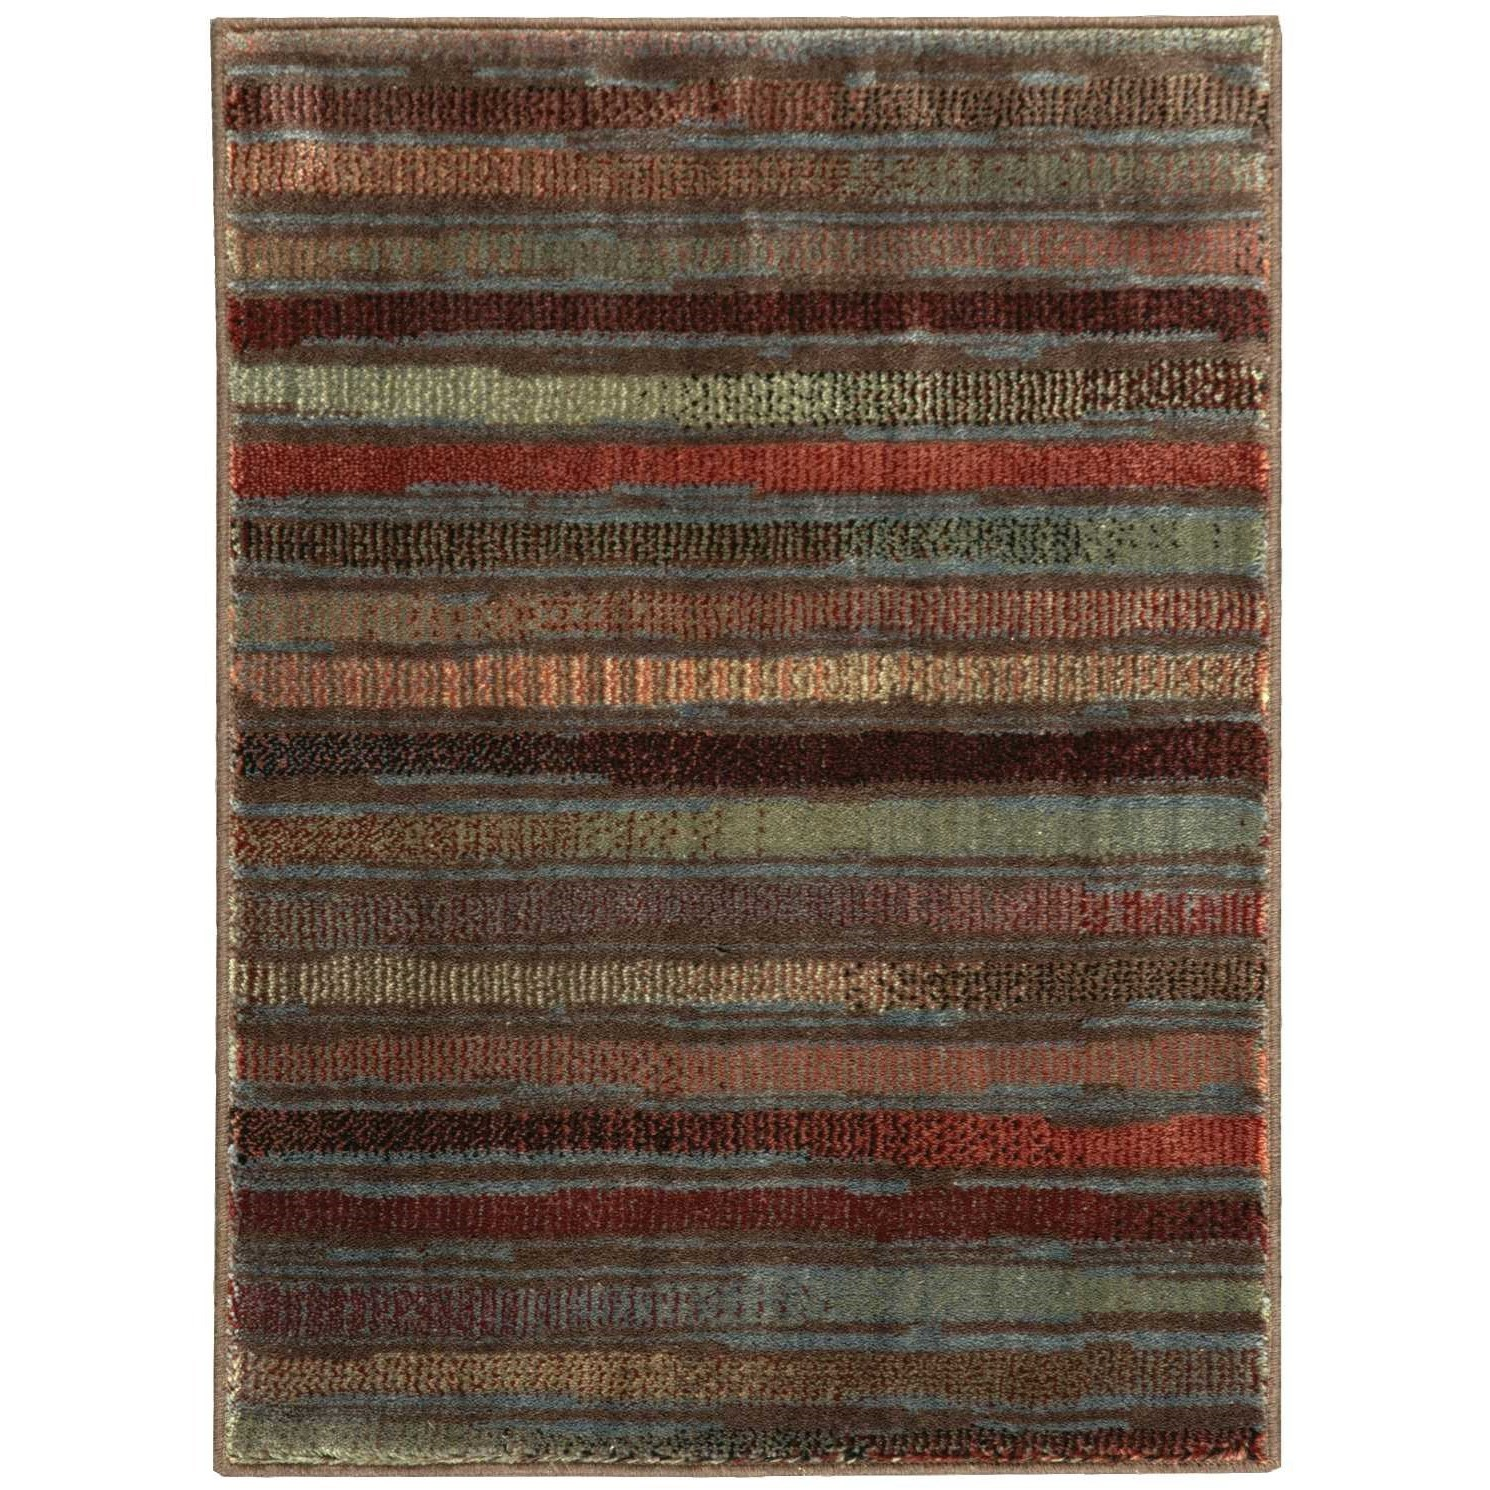 "Expressions 2' x 2'9"" Multicolor Rectangle Rug by Nourison at Home Collections Furniture"